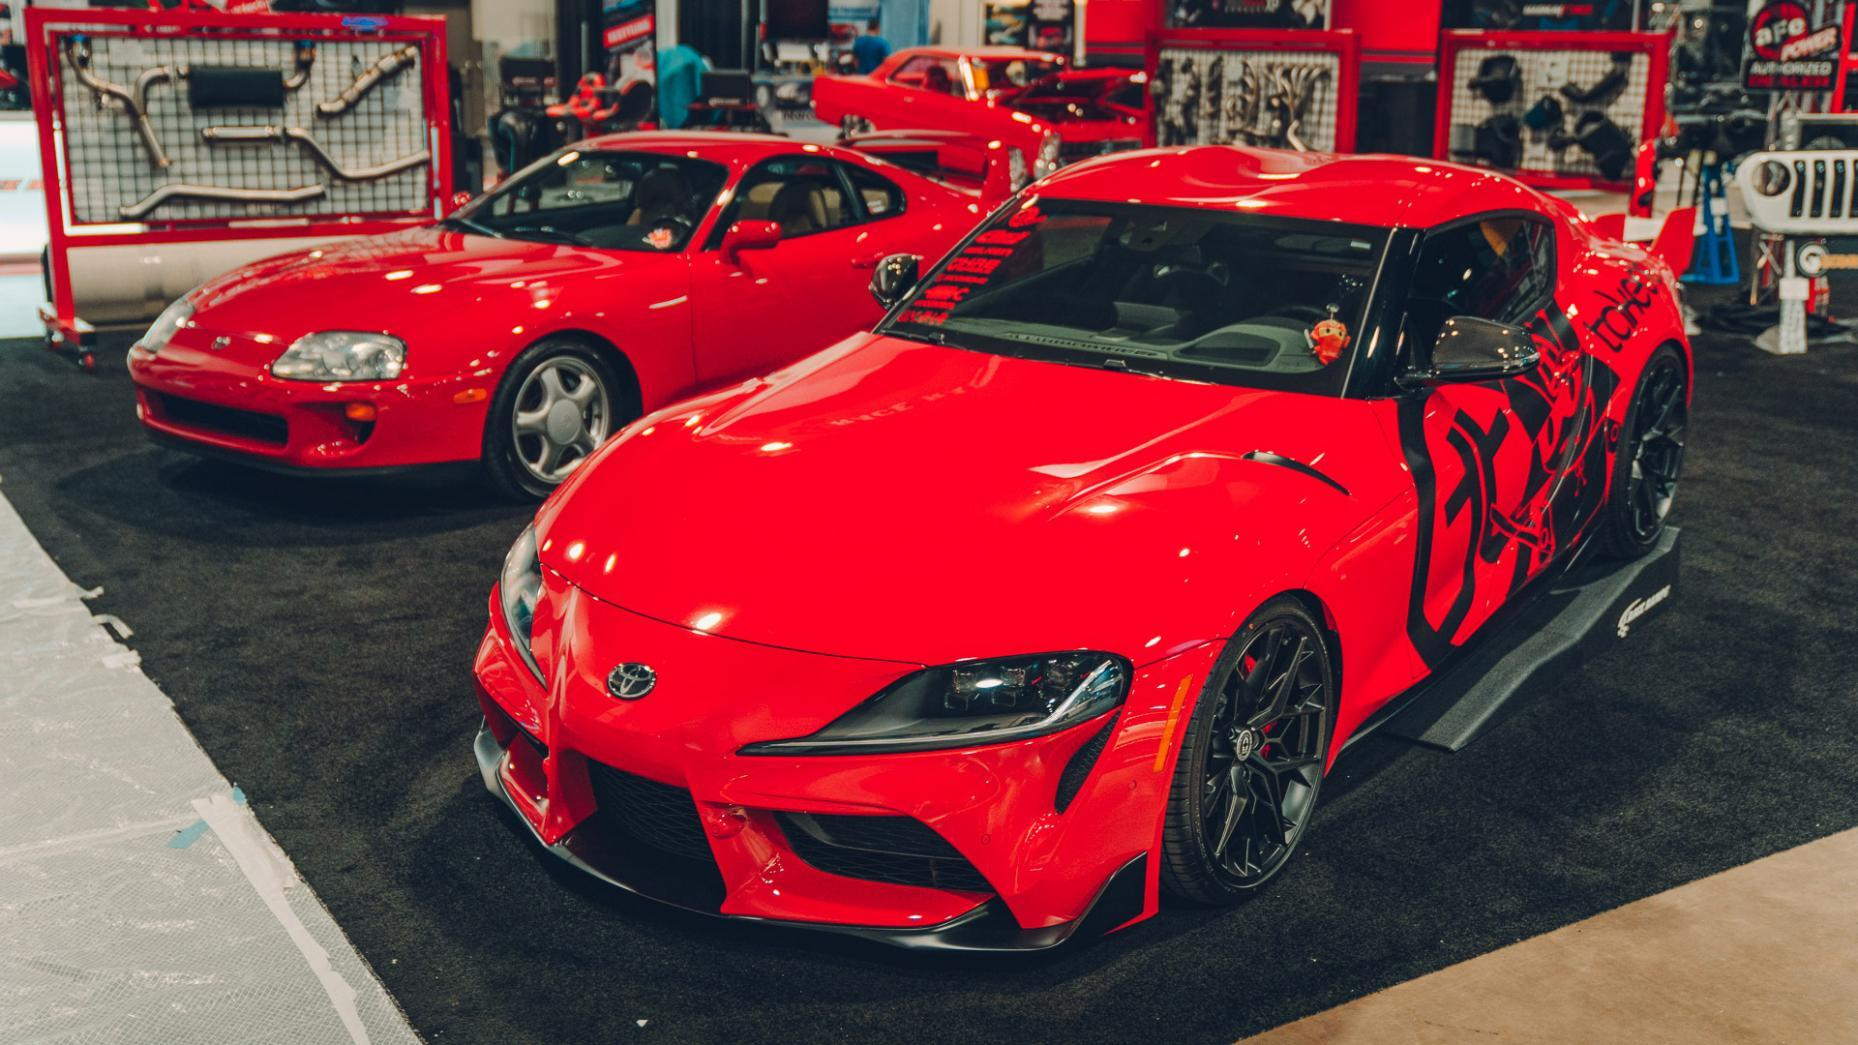 Toyota A90 Supra SEMA 2019 rood drie kwart links voor boven